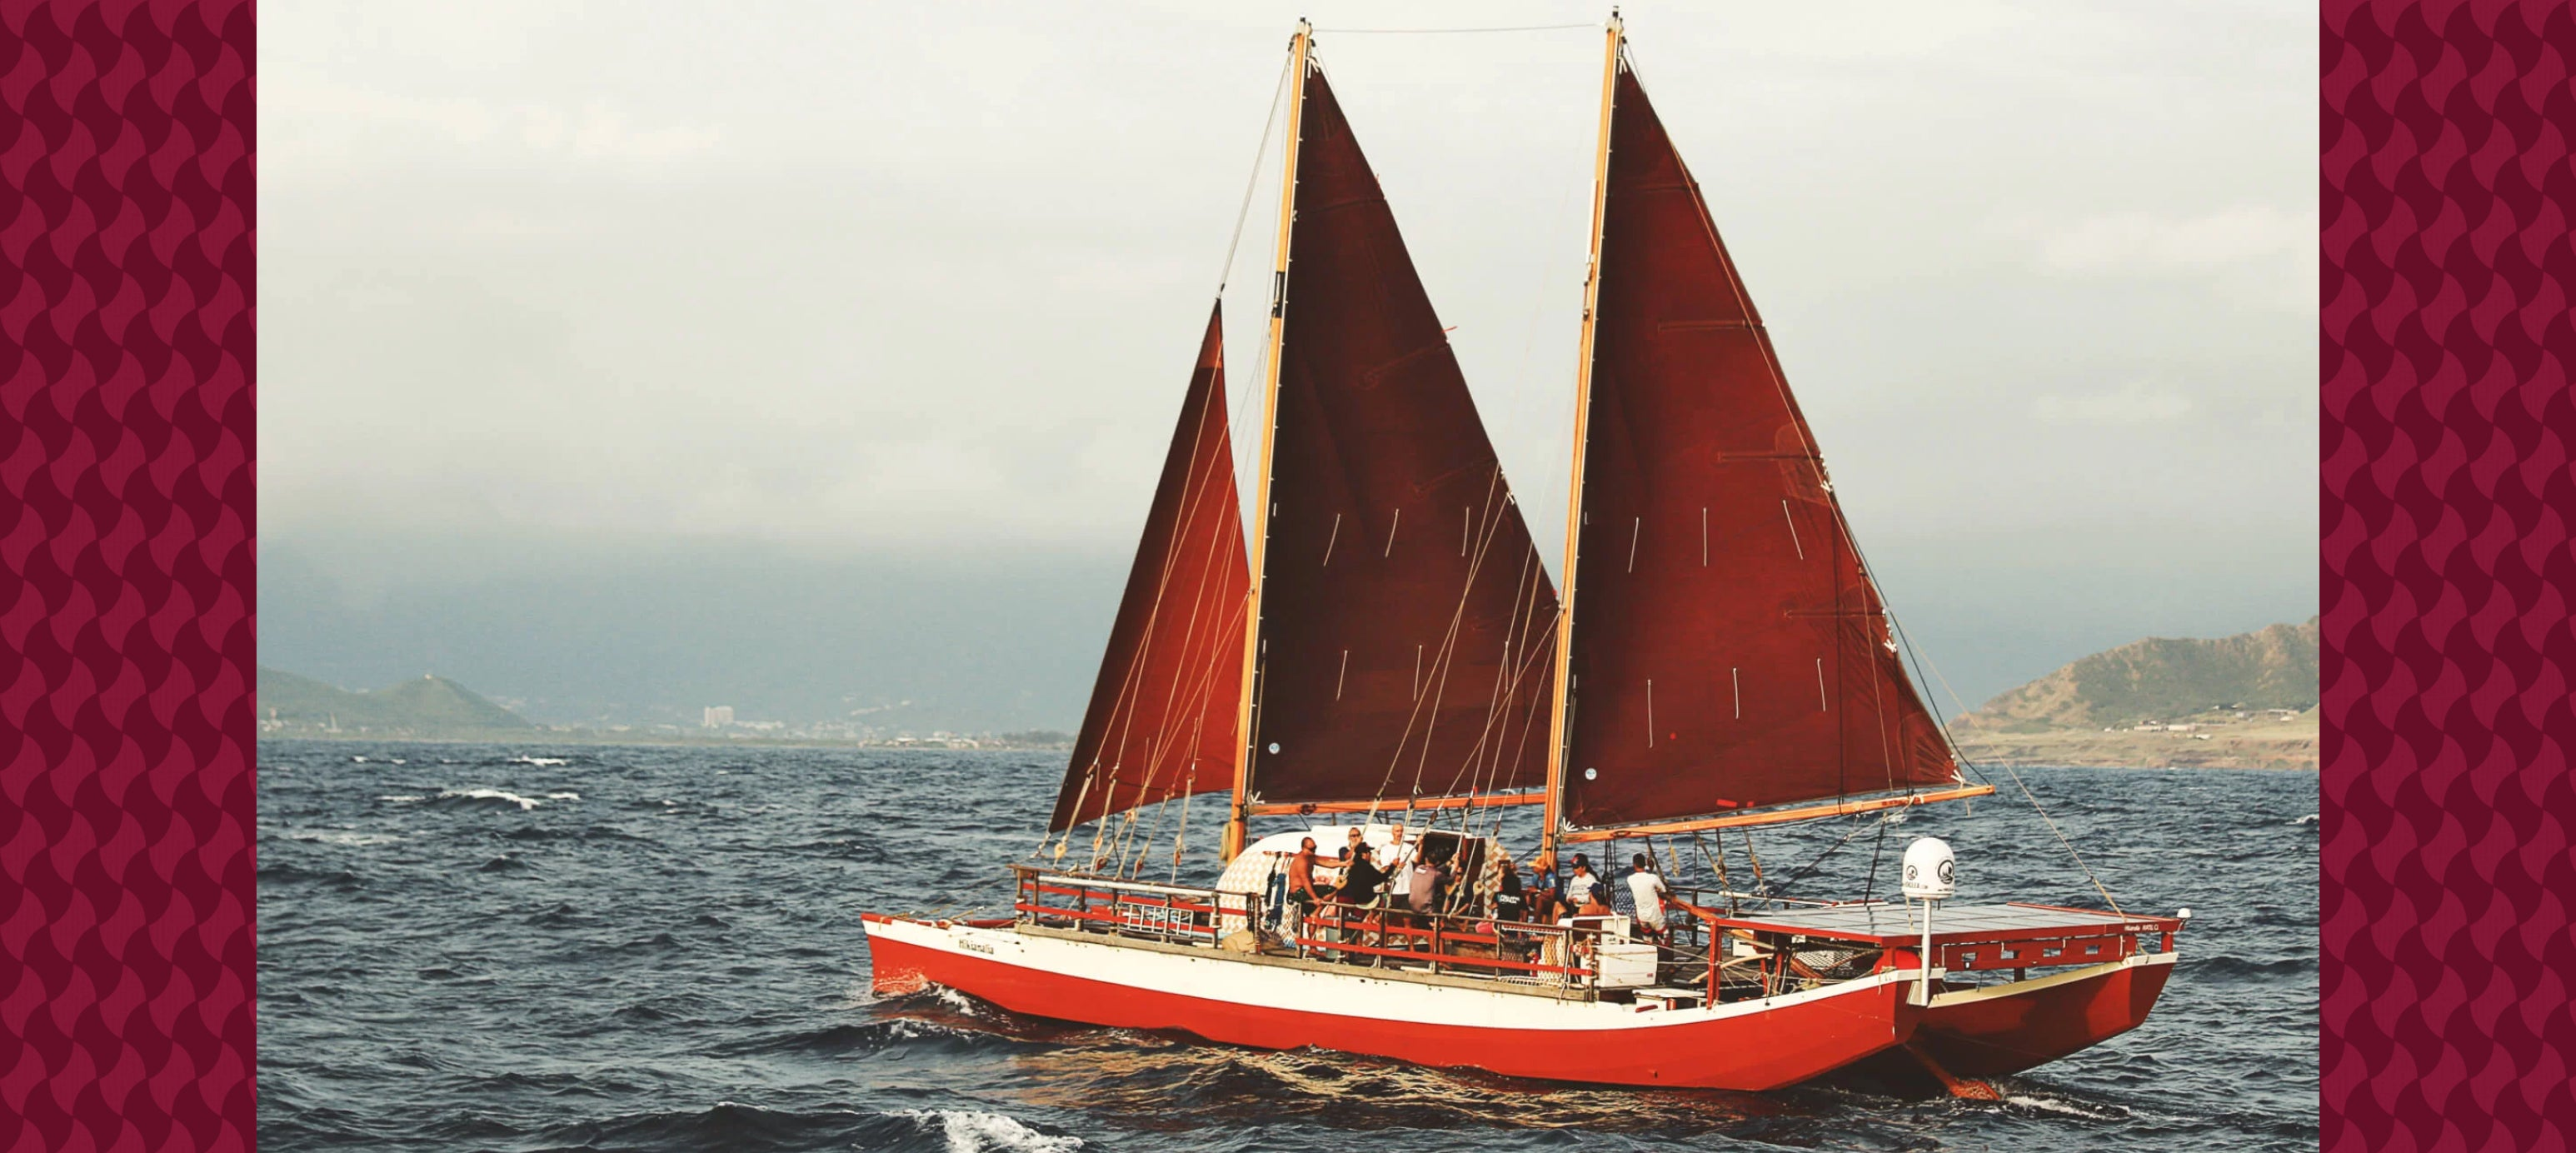 hikianalia sailboat voyage